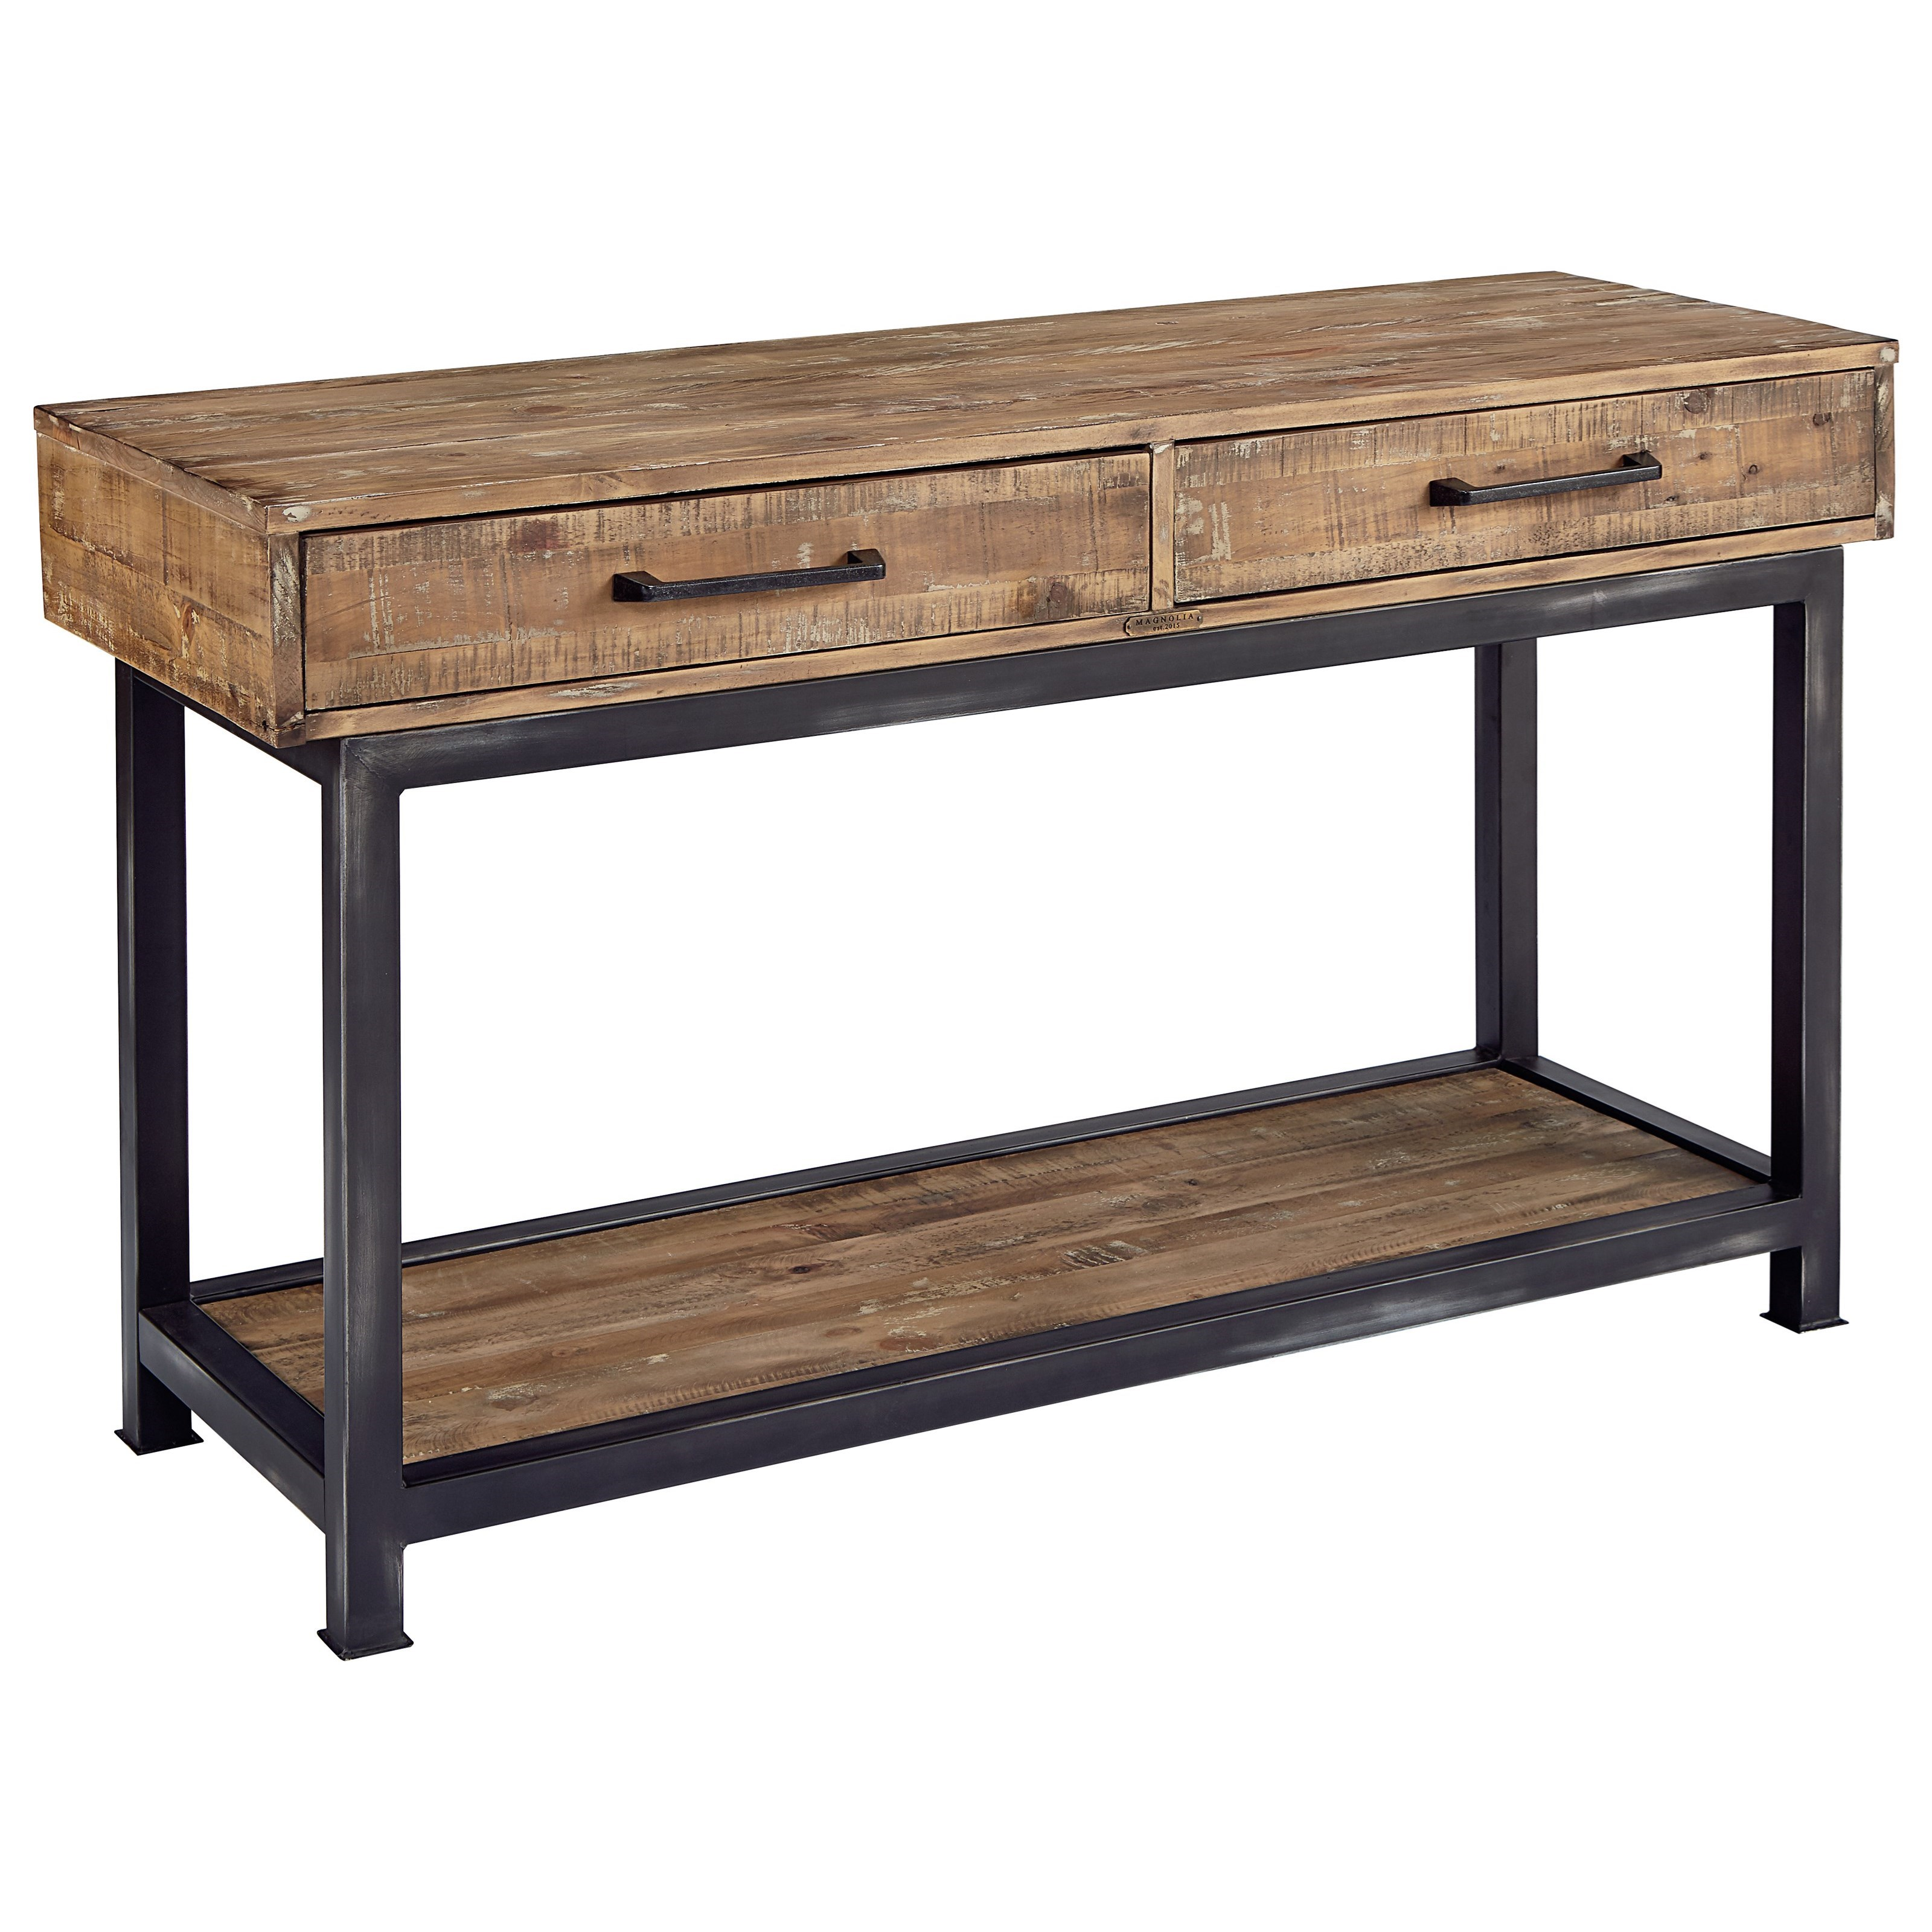 magnolia home by joanna gaines industrial pier and beam console  - magnolia home by joanna gaines industrial console table  item numbers